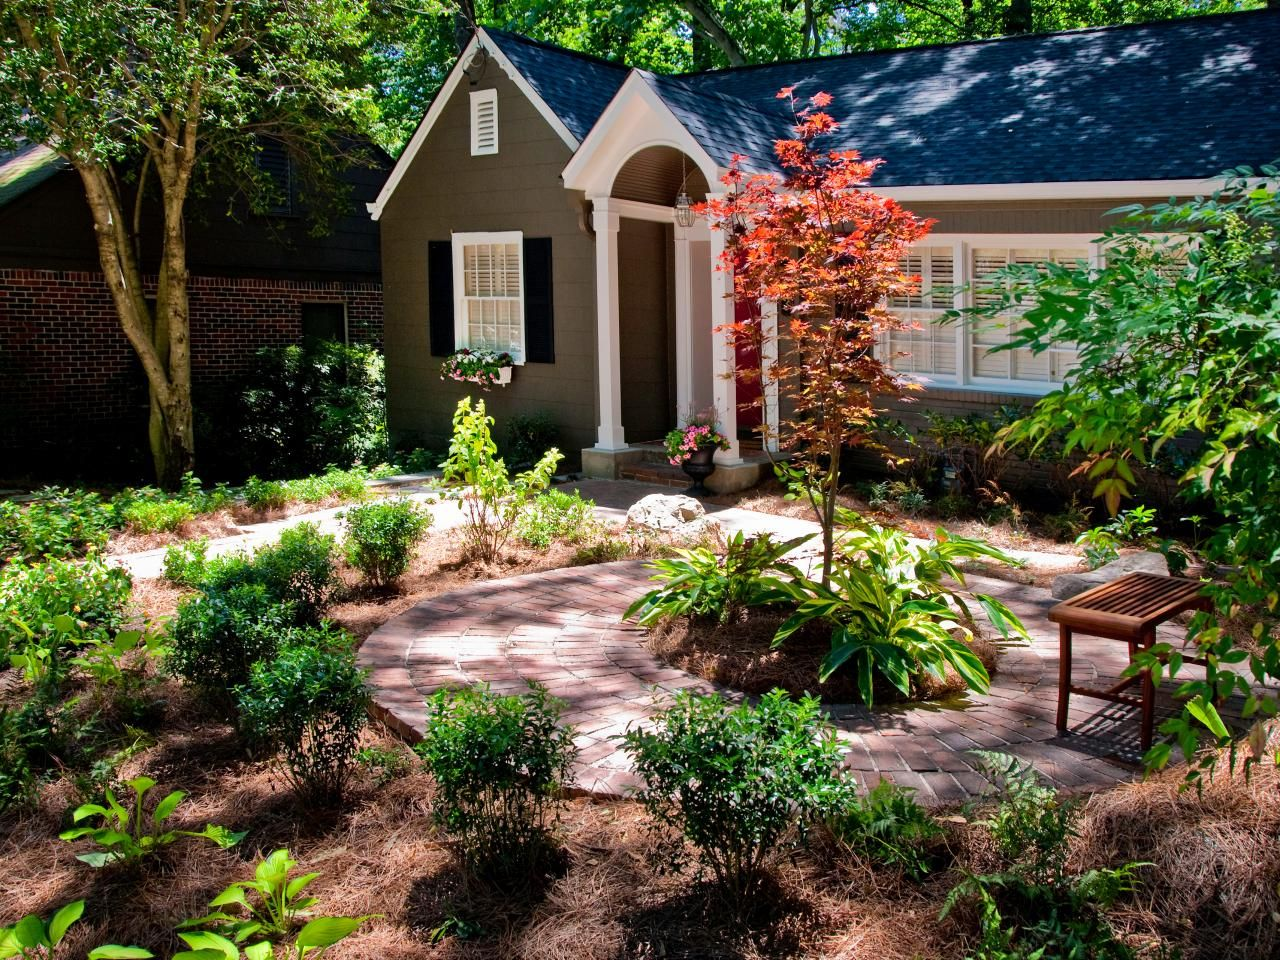 Garden and patio diy front yard landscaping ideas for Modern front yard landscaping